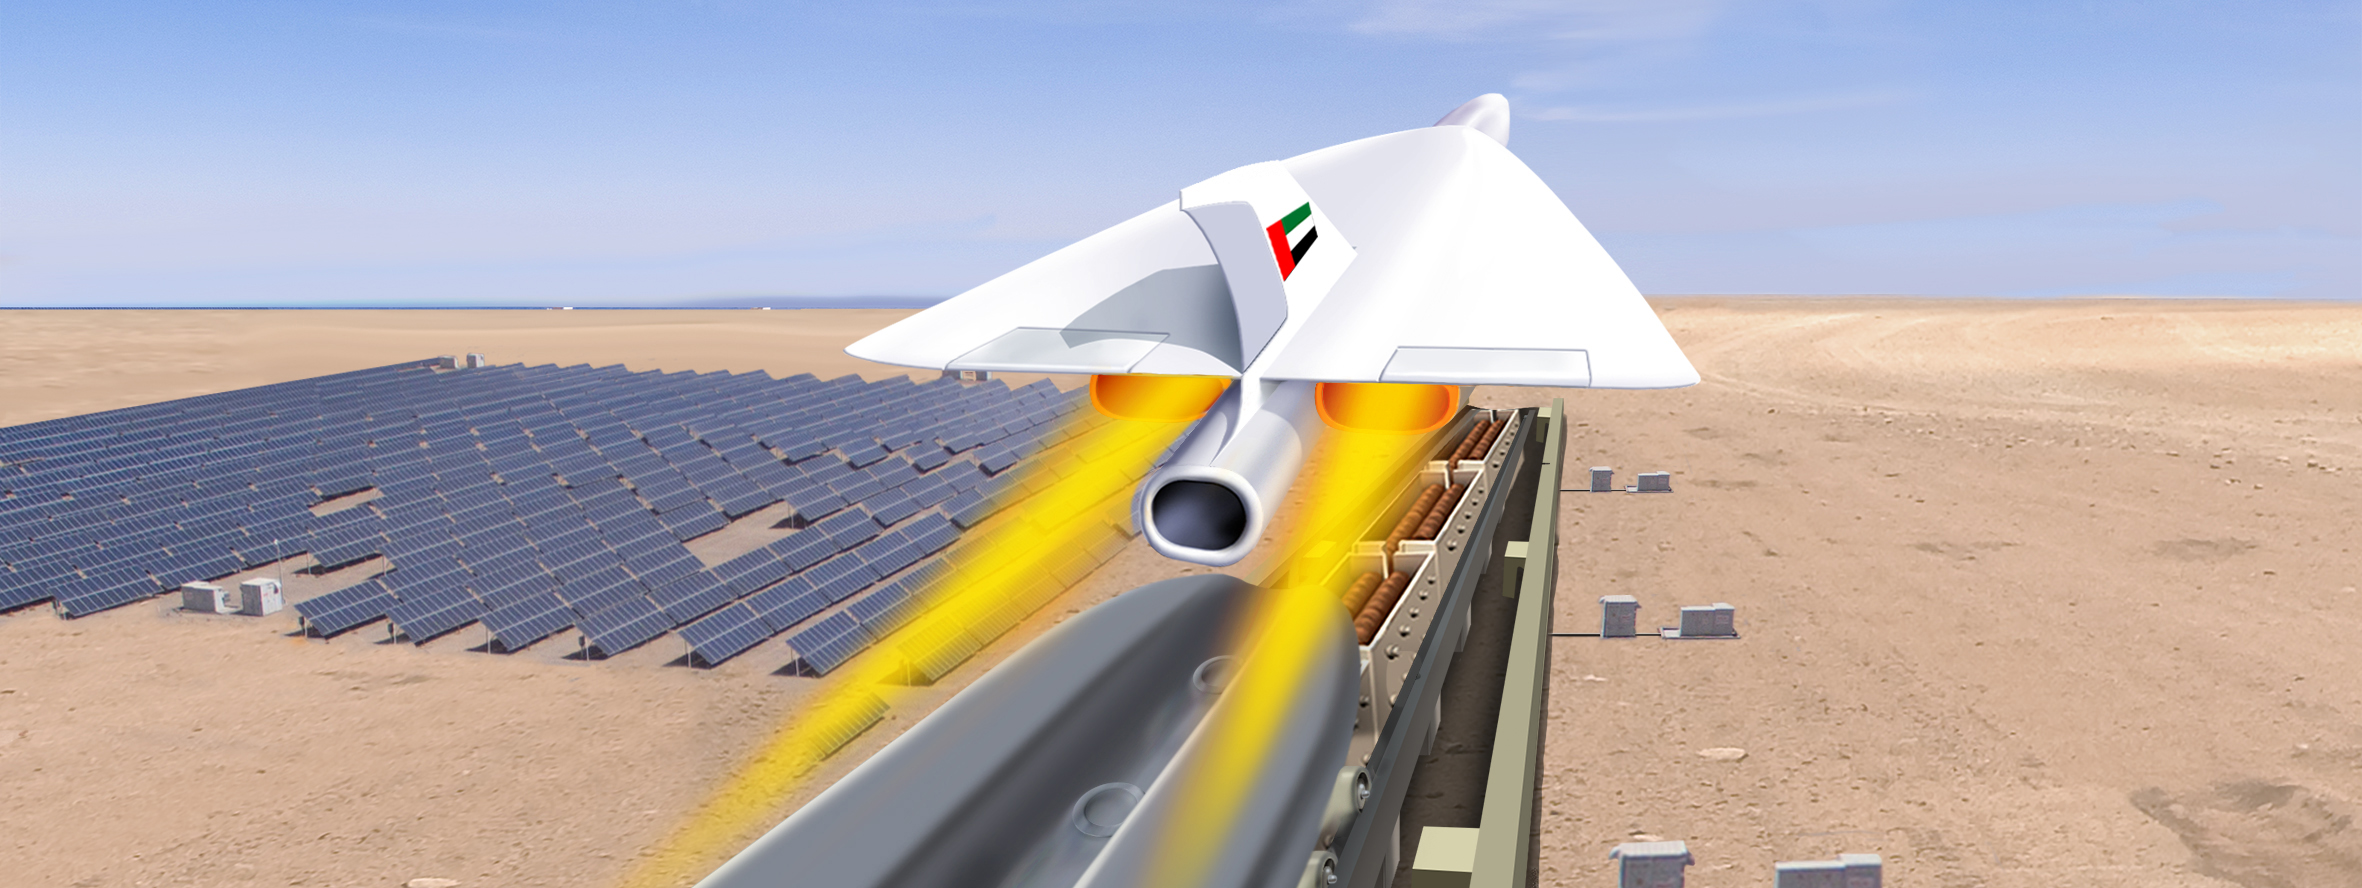 Artist's impression: Swala taking off from a linear motor track